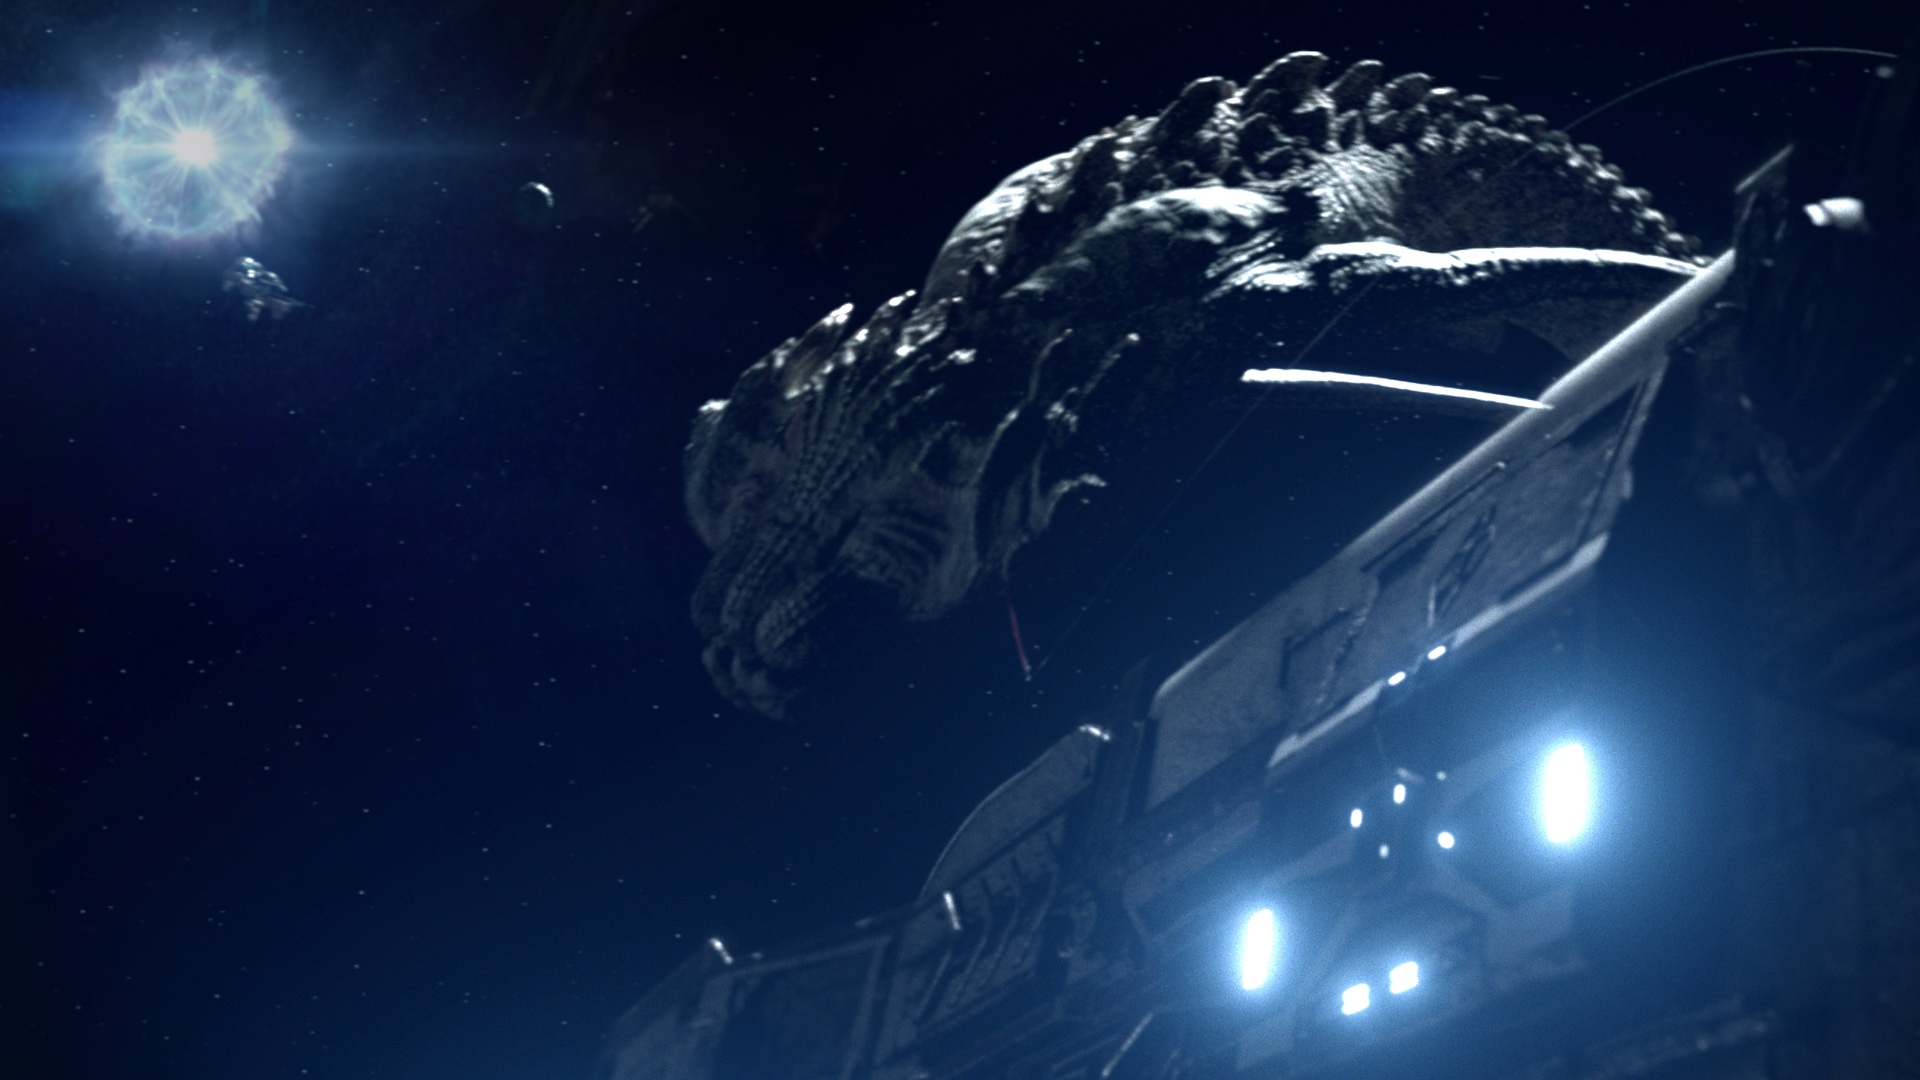 a-giant-alien-space-creature-is-being-hunted-down-in-this-trailer-for-sci-fi-film-beyond-white-space-social.jpg